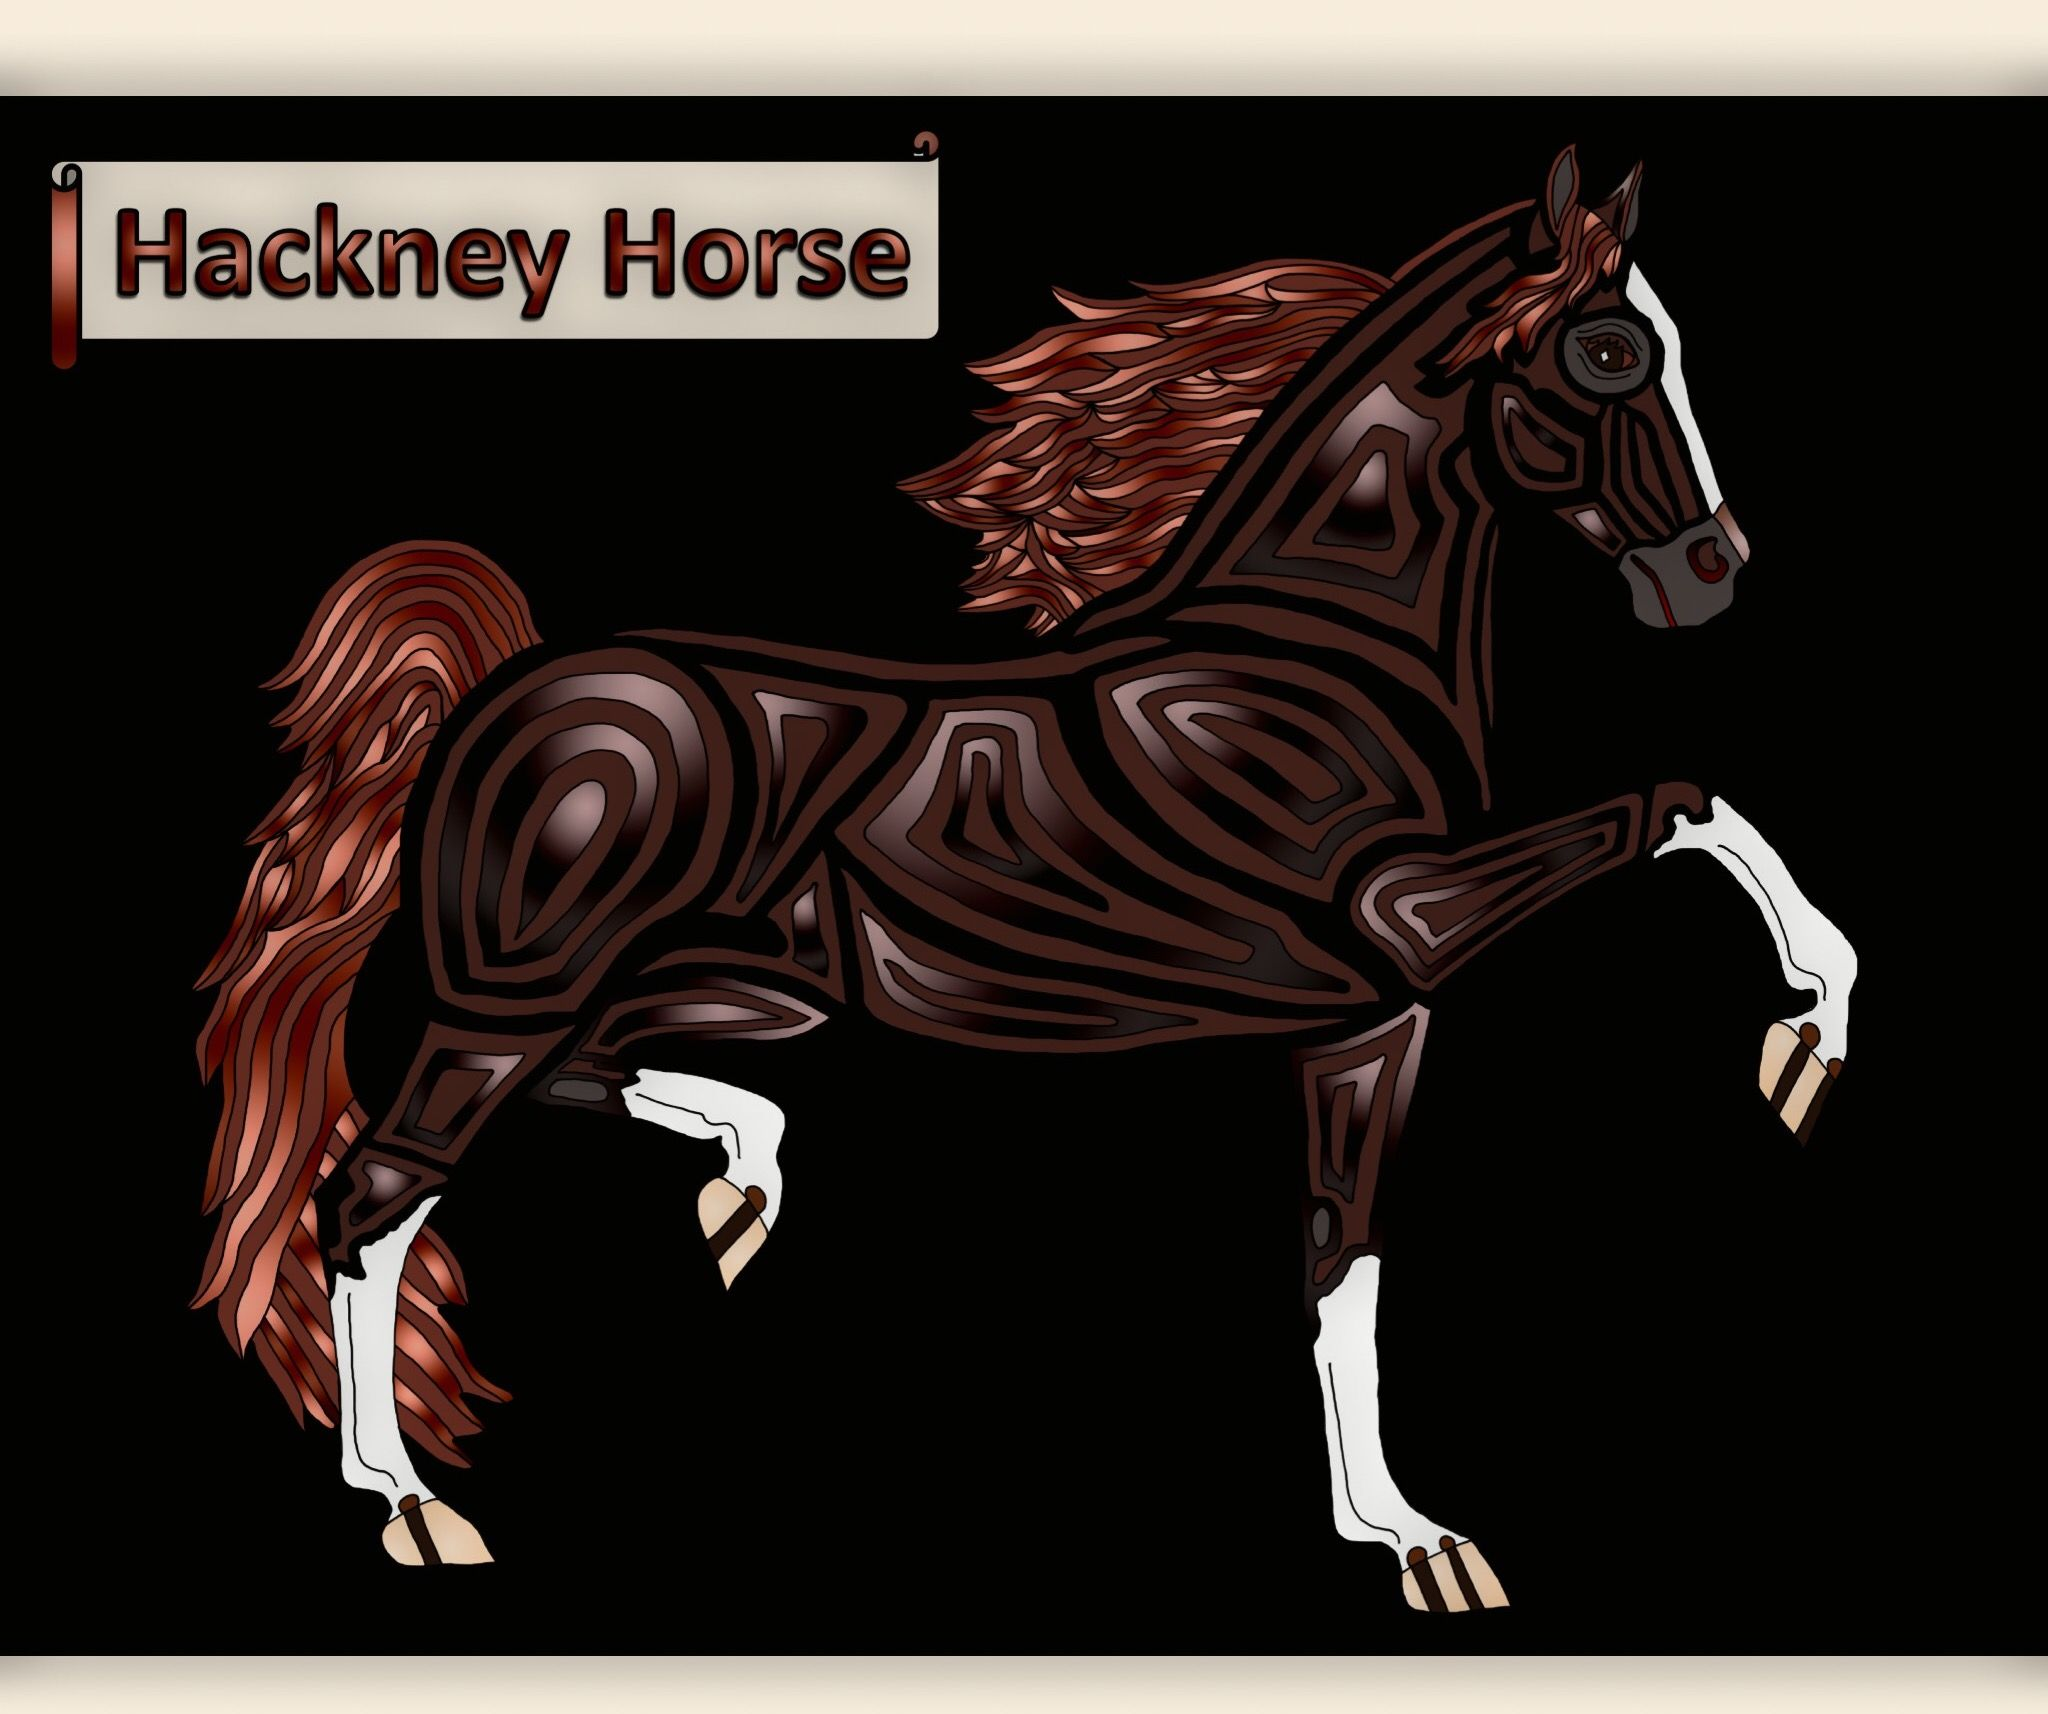 Pin By Shawna Bloom On Horse Coloring Pages Horse Color Books Horse Coloring Pages Horse Coloring Books Hackney Horse [ 1714 x 2048 Pixel ]